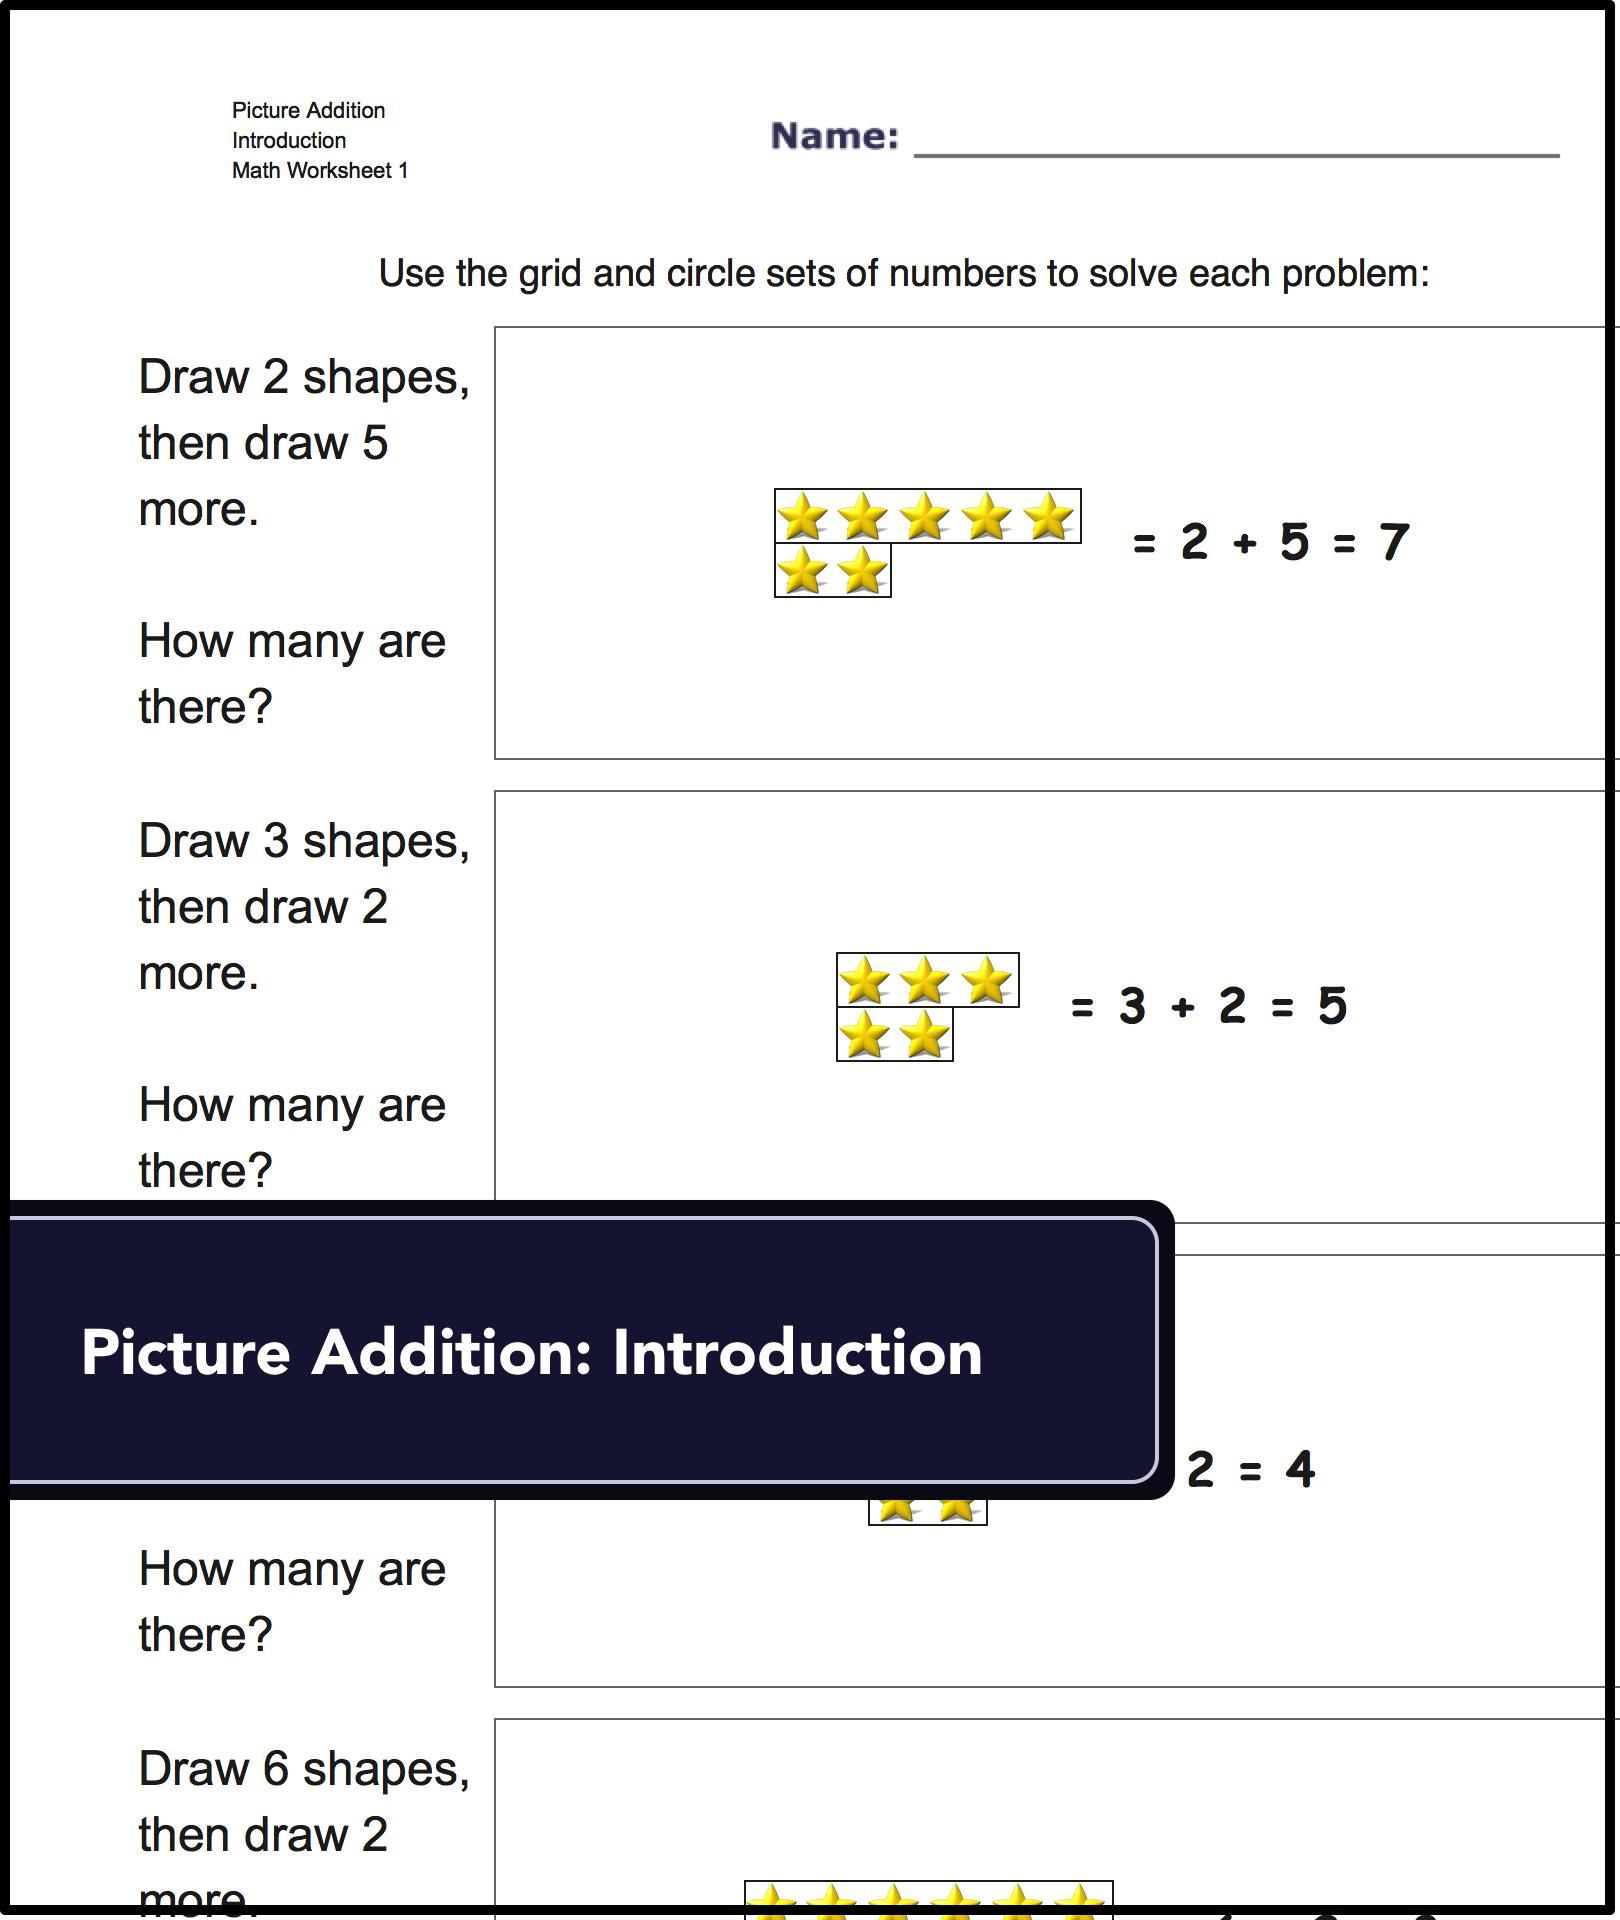 Are You Looking For Free Printable Kindergarten Math Worksheets Dad S Worksheets Has Printable Kindergarten Worksheets Math Worksheets Basic Math Worksheets